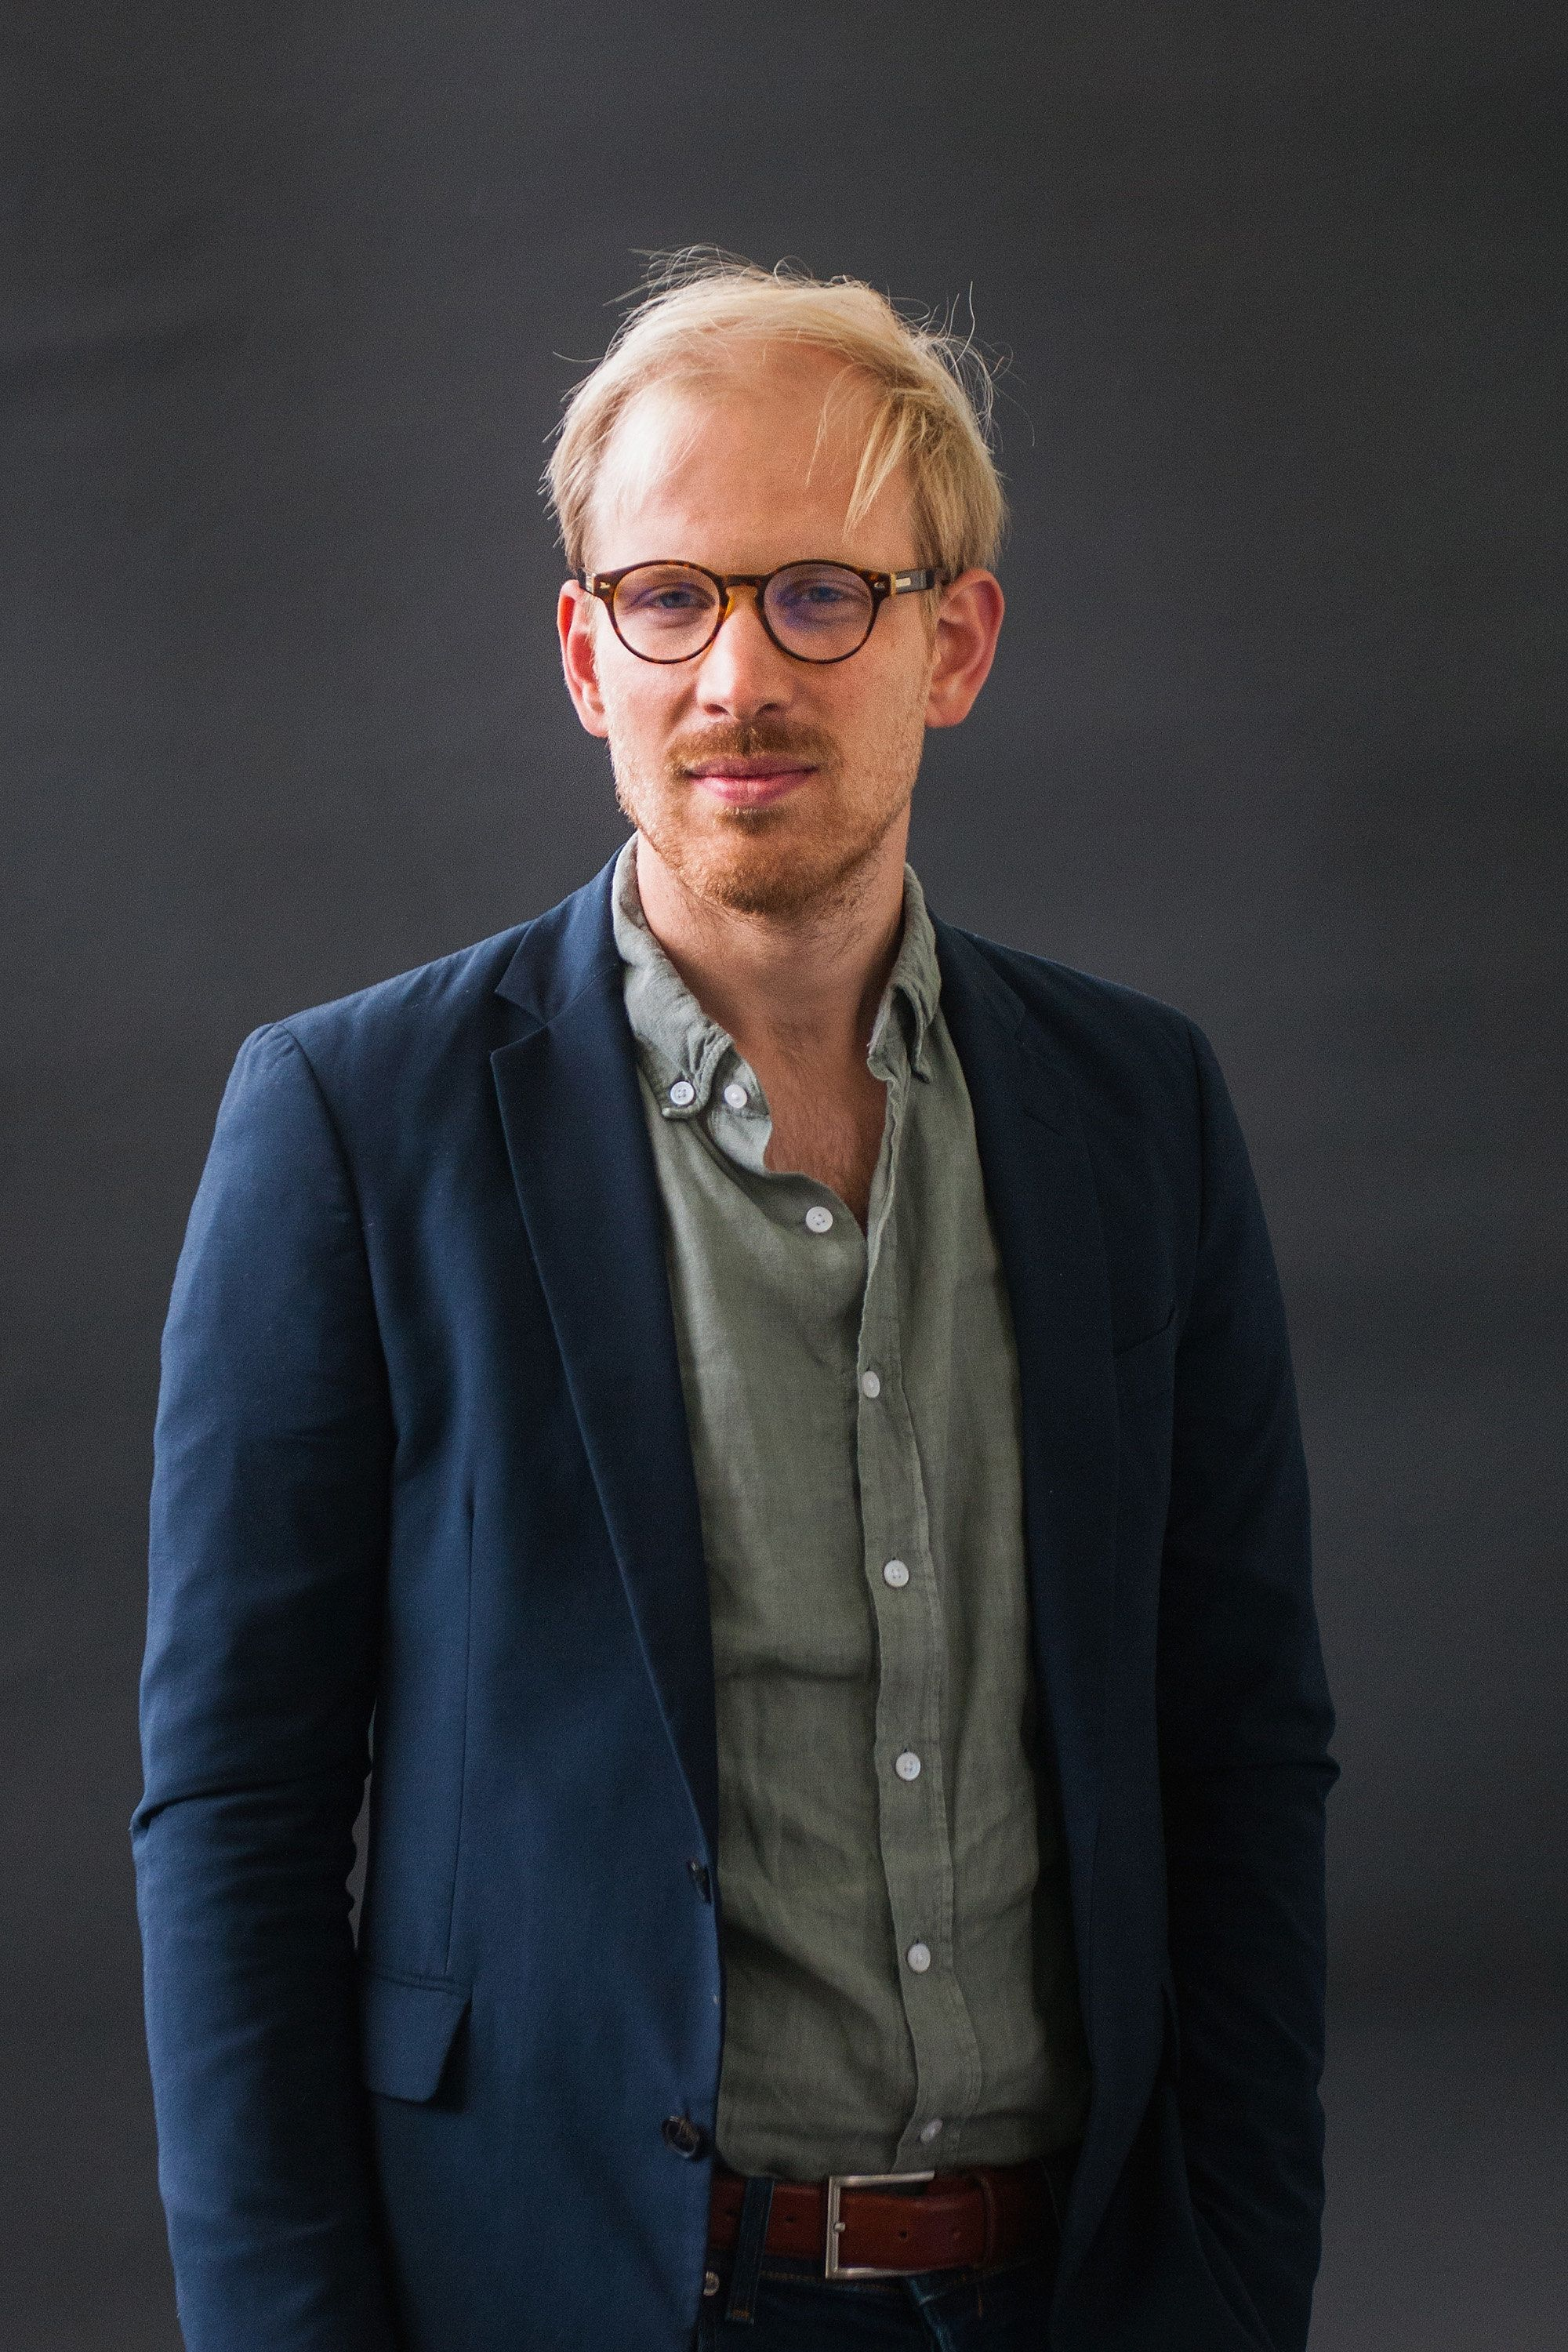 EDINBURGH, SCOTLAND - AUGUST 12:  Rutger Bregman during the Edinburgh International Book Festival on August 12, 2017 in Edinburgh, Scotland.  (Photo by Simone Padovani/Awakening/Getty Images)